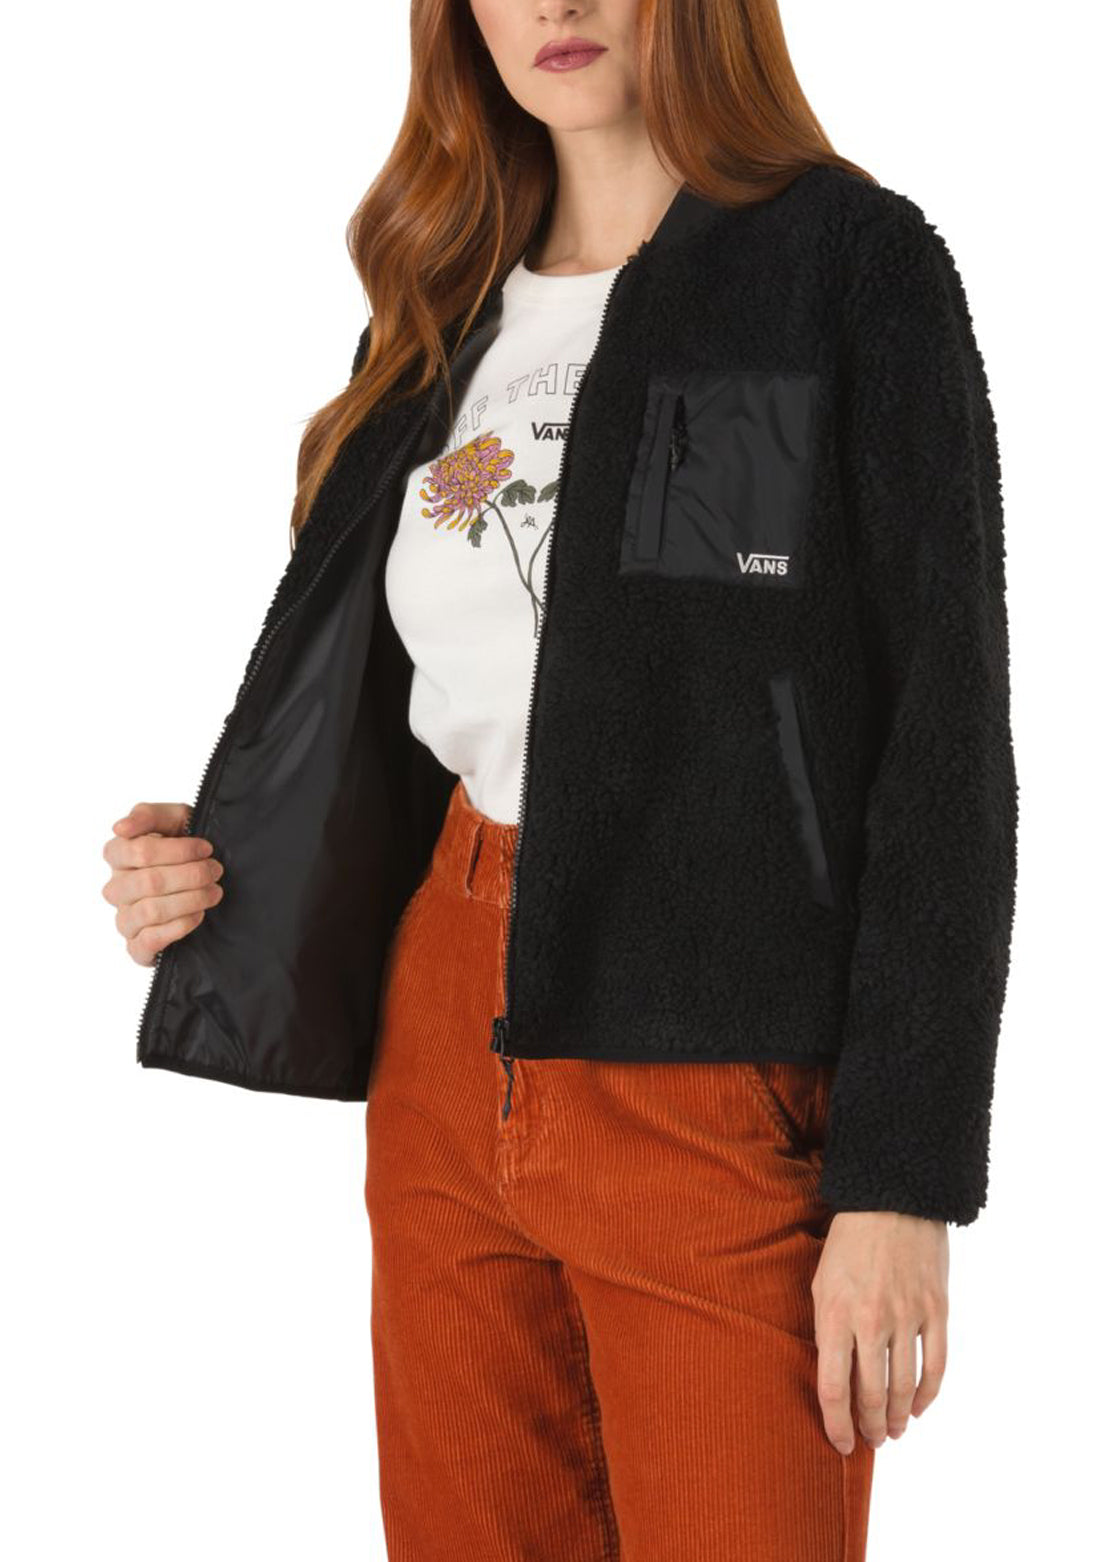 Vans Women's Misty Fog Jacket Black